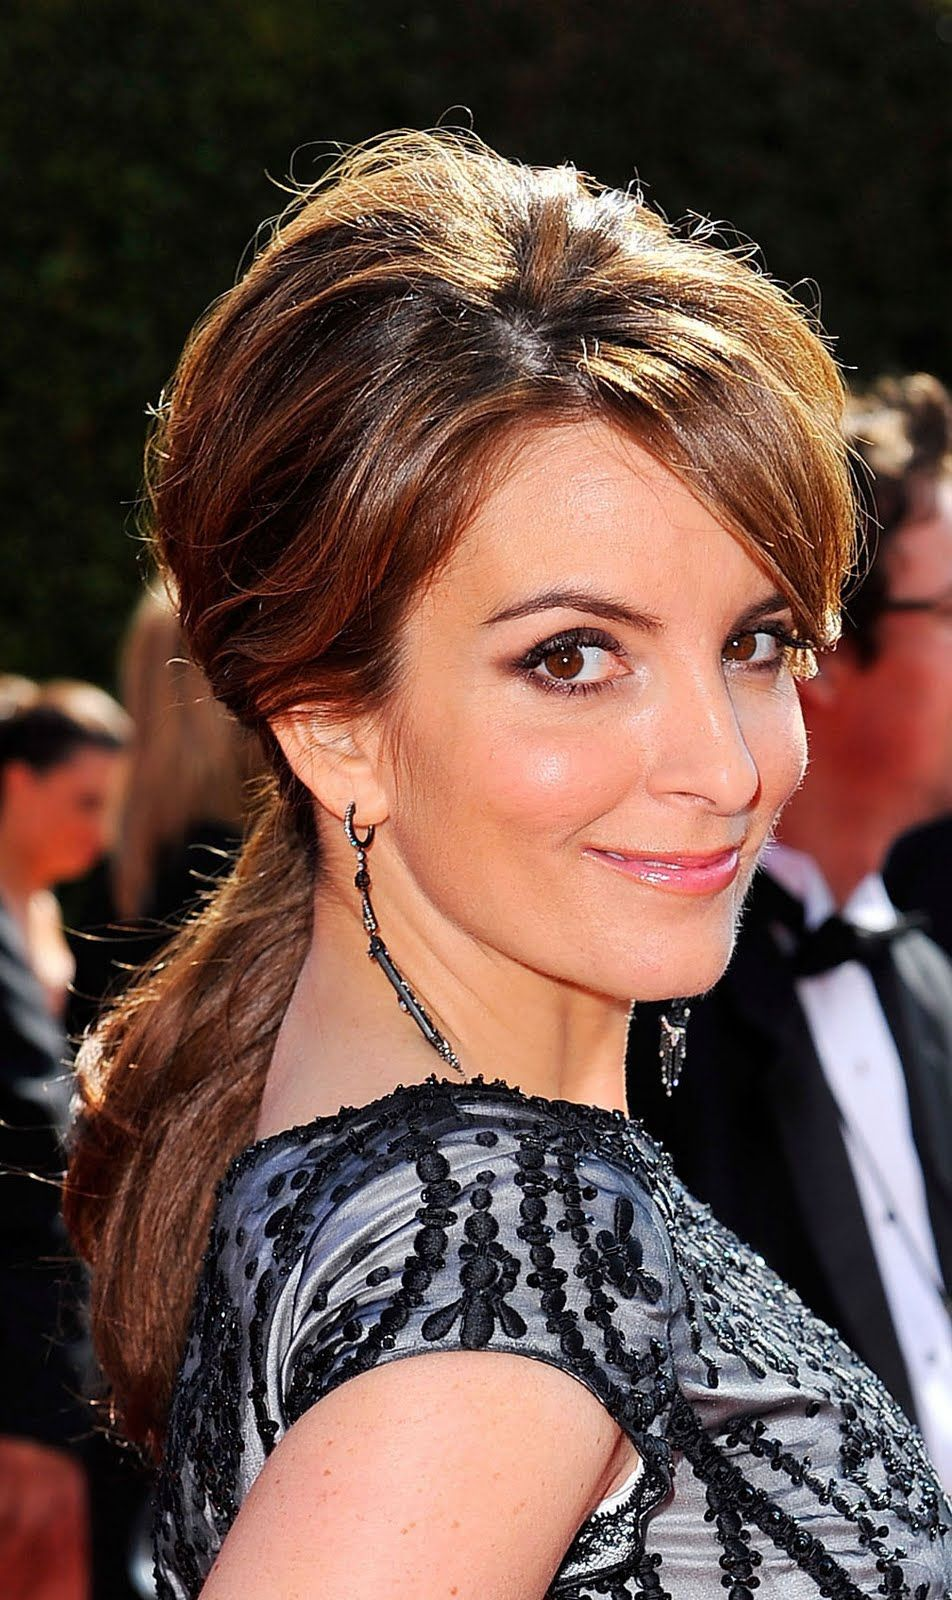 Tina Fey Tina Tv Series Hairdo Hairstyle Actress Famous Party Hairstyles Holiday Party Hair Christmas Party Hairstyles